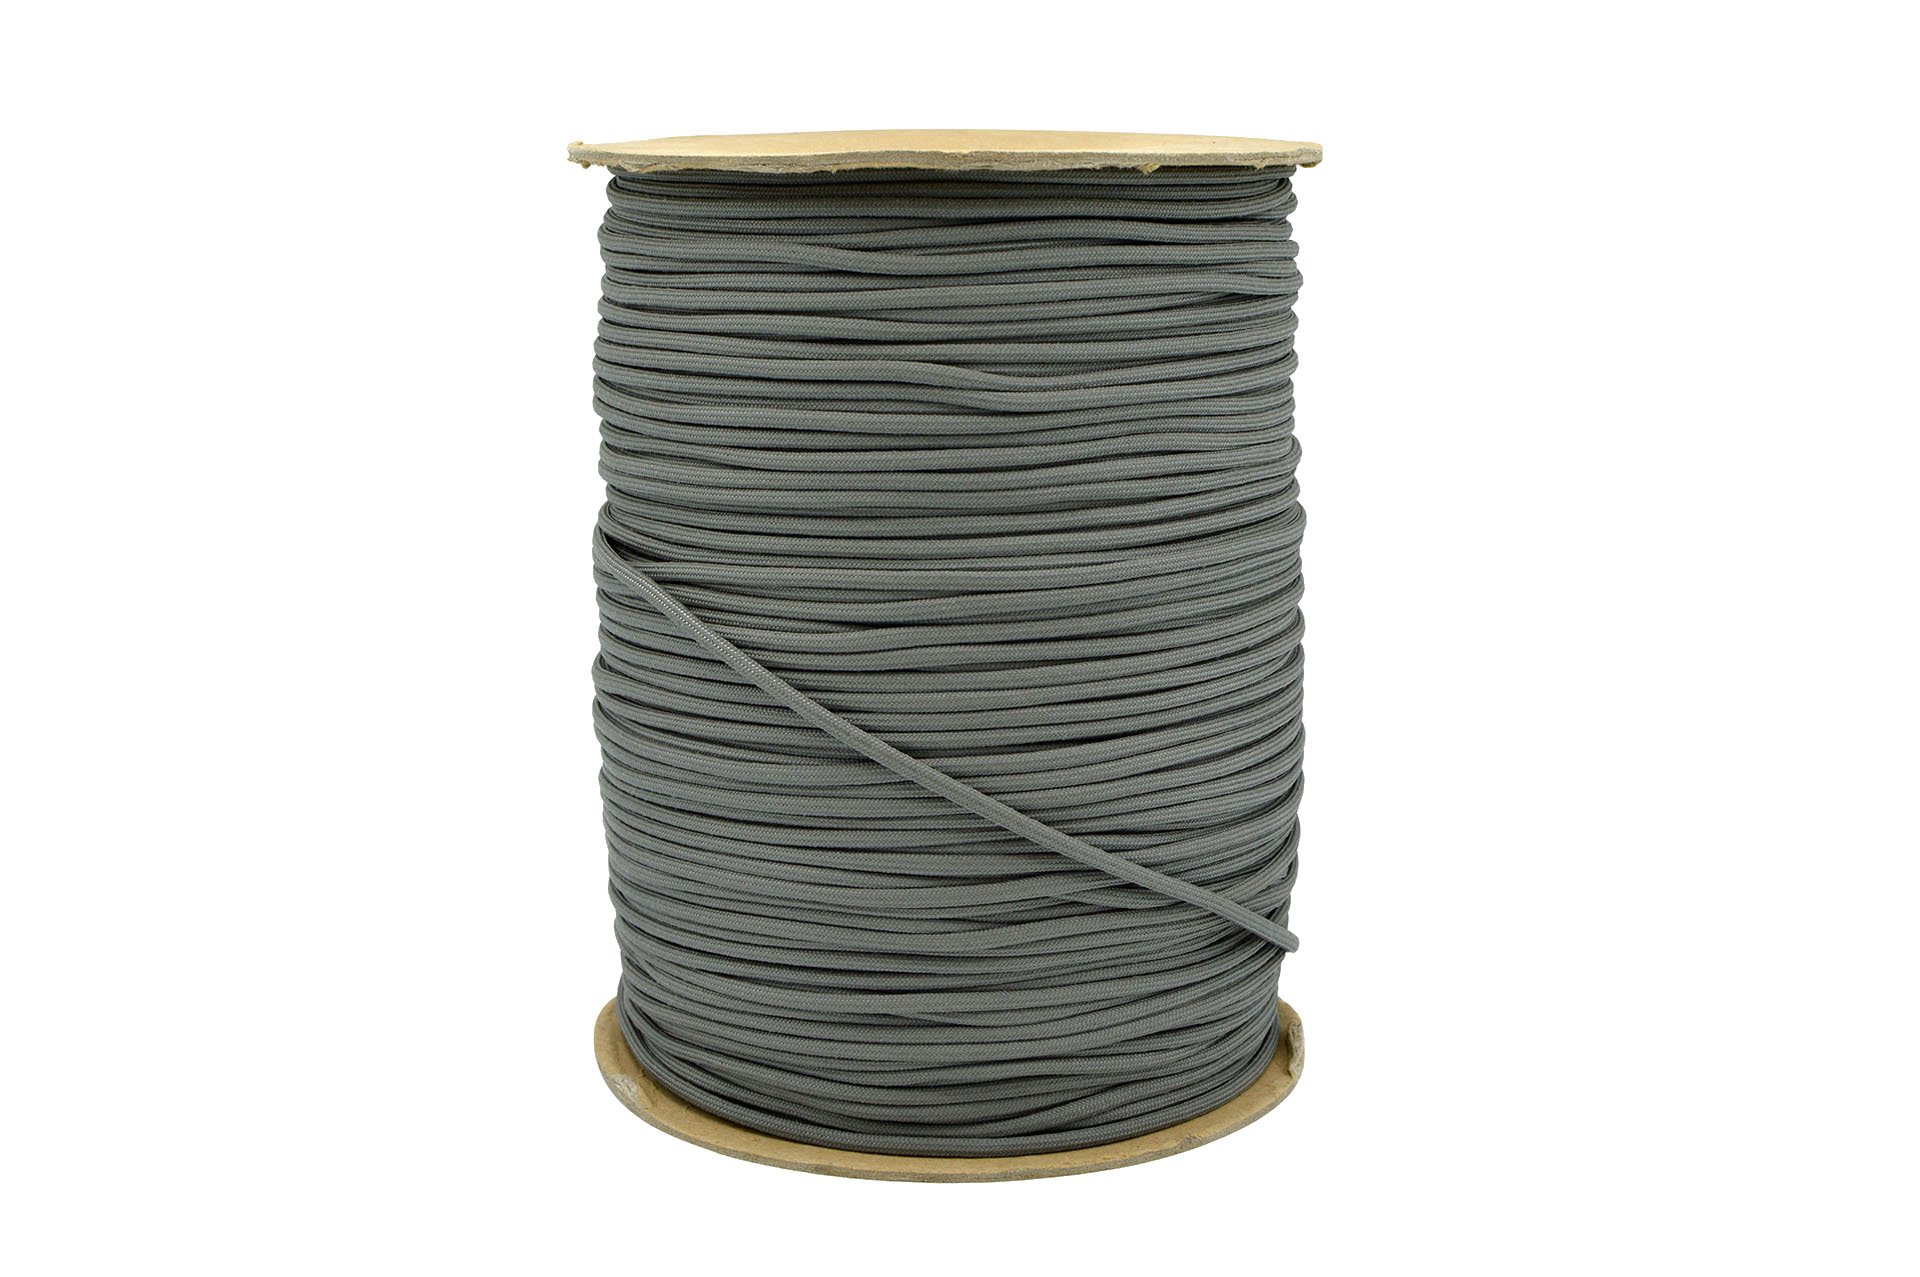 Paracord Rope 550 Type III Paracord - Parachute Cord - 550lb Tensile Strength - 100% Nylon - Made In The USA (Foliage Green, 50 Feet) by Paracord Rope (Image #2)